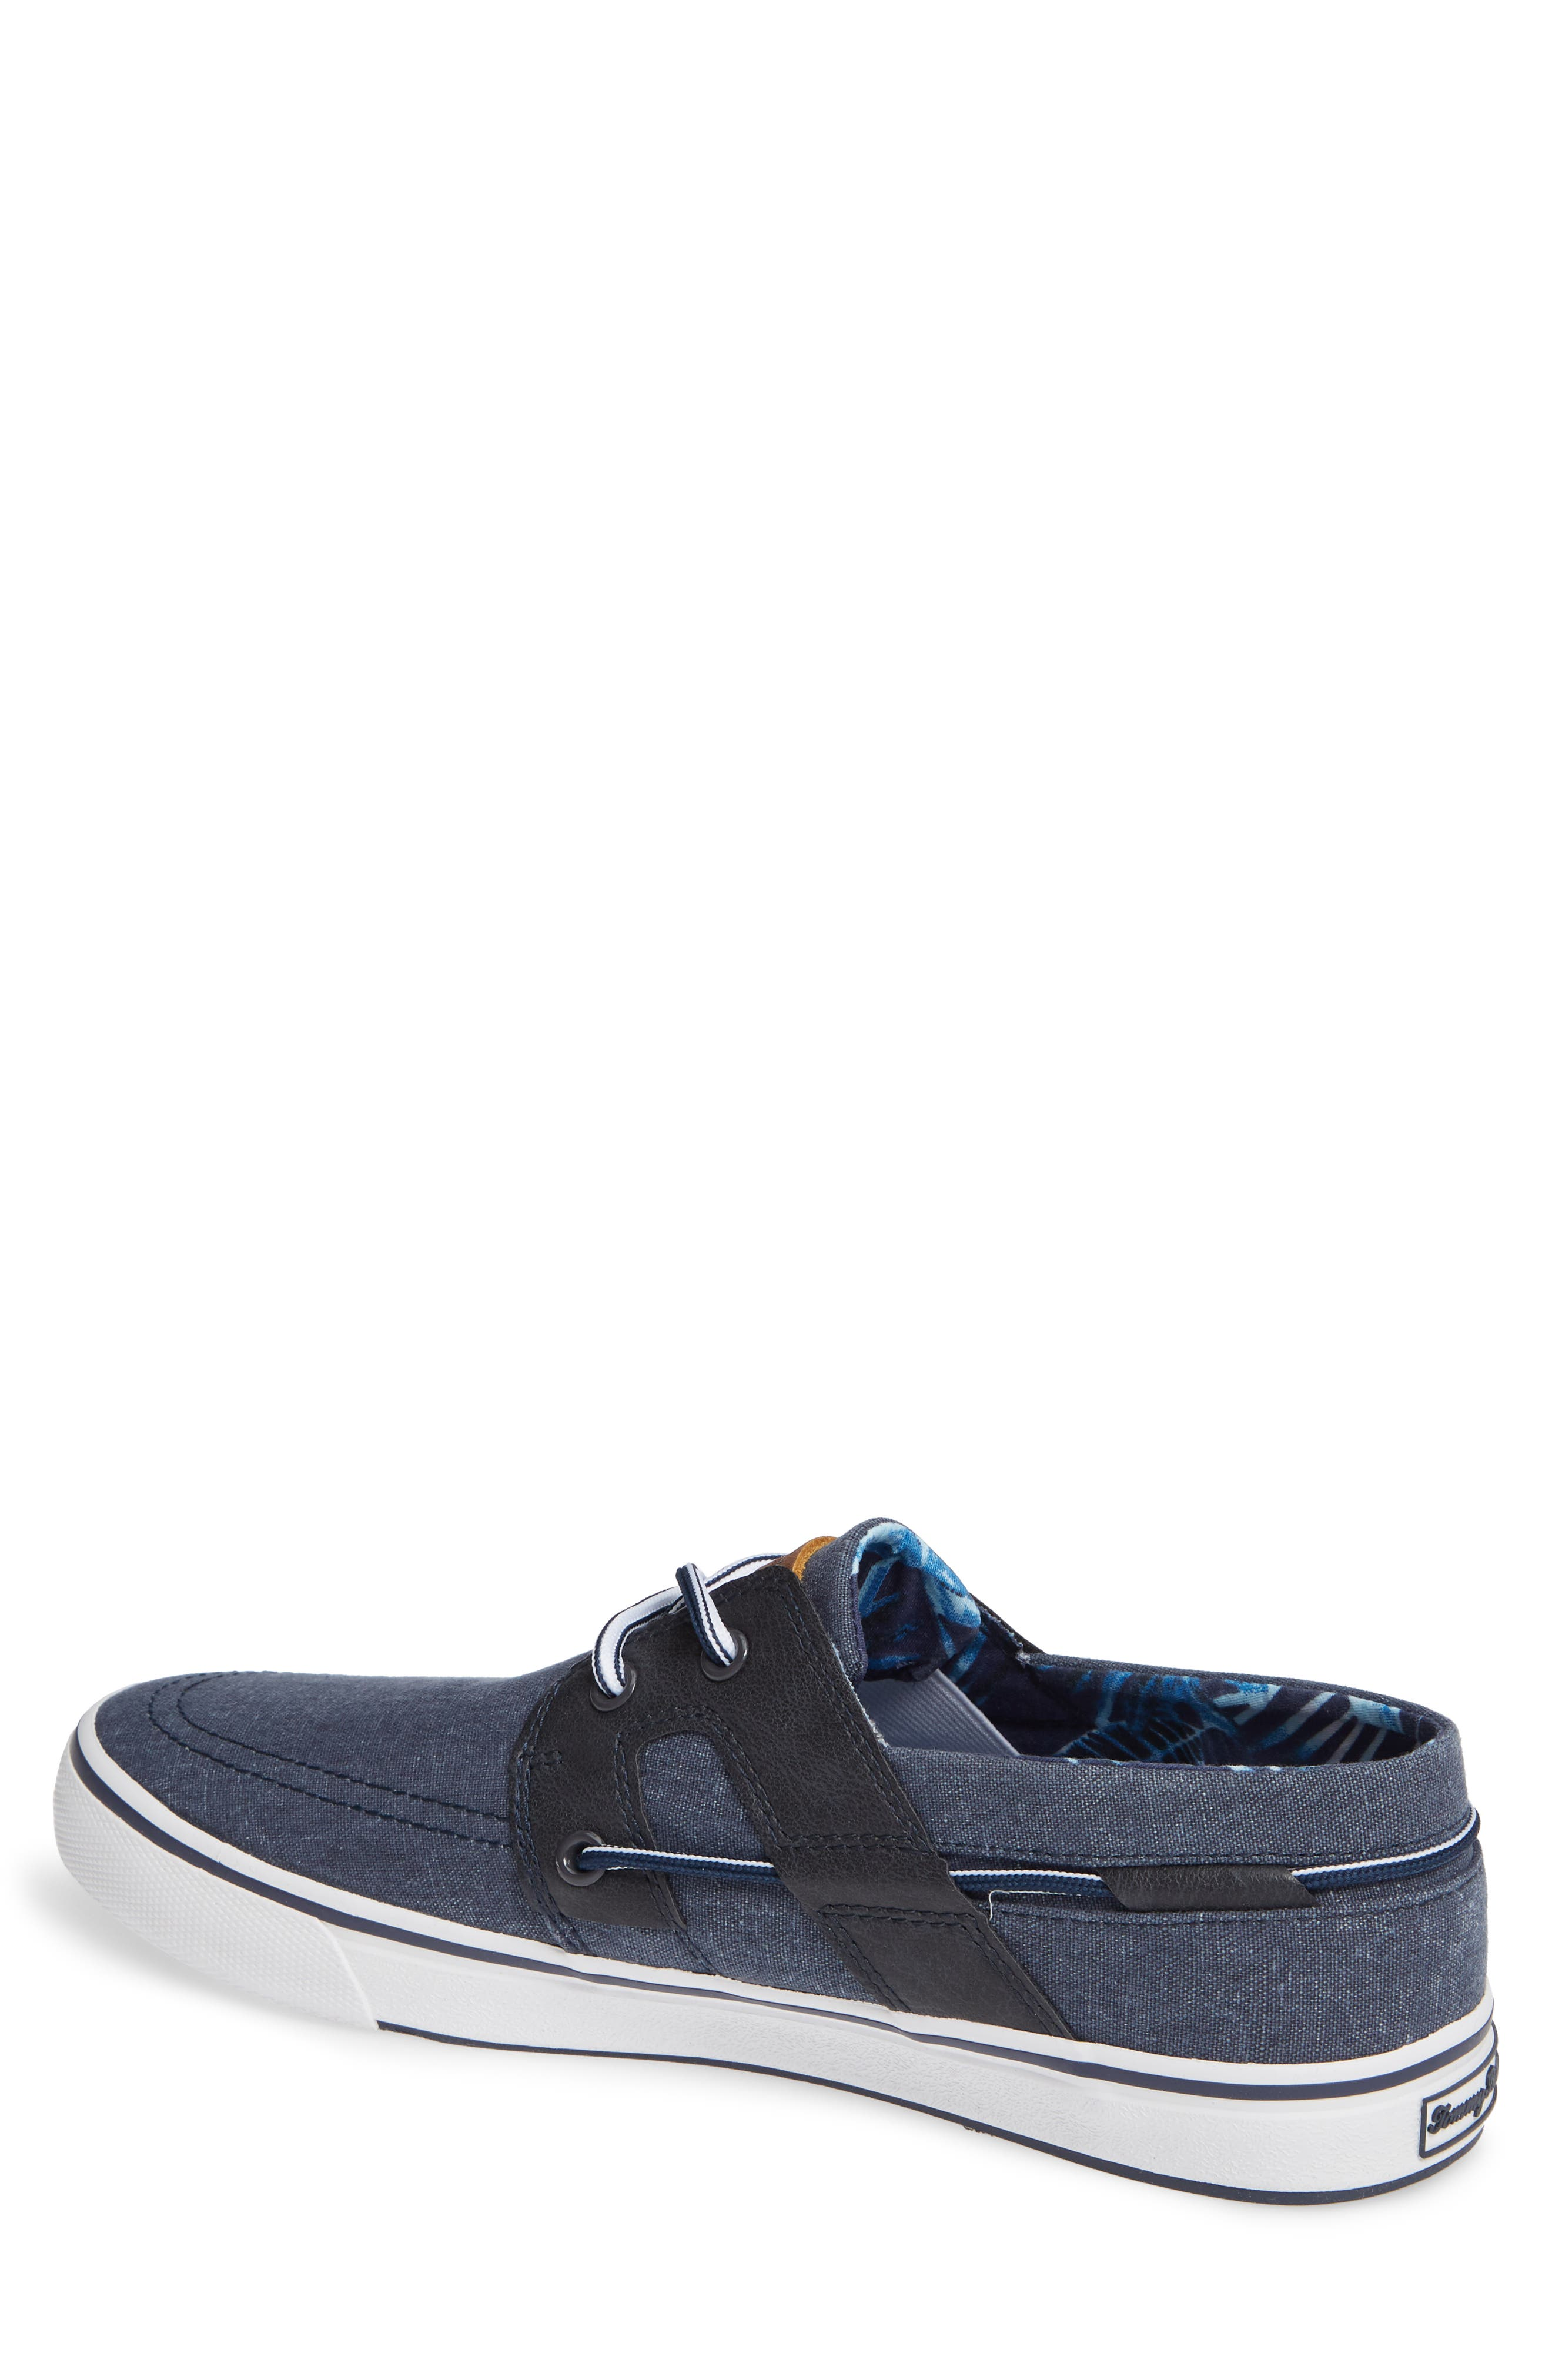 0003537803f Men s Tommy Bahama Shoes